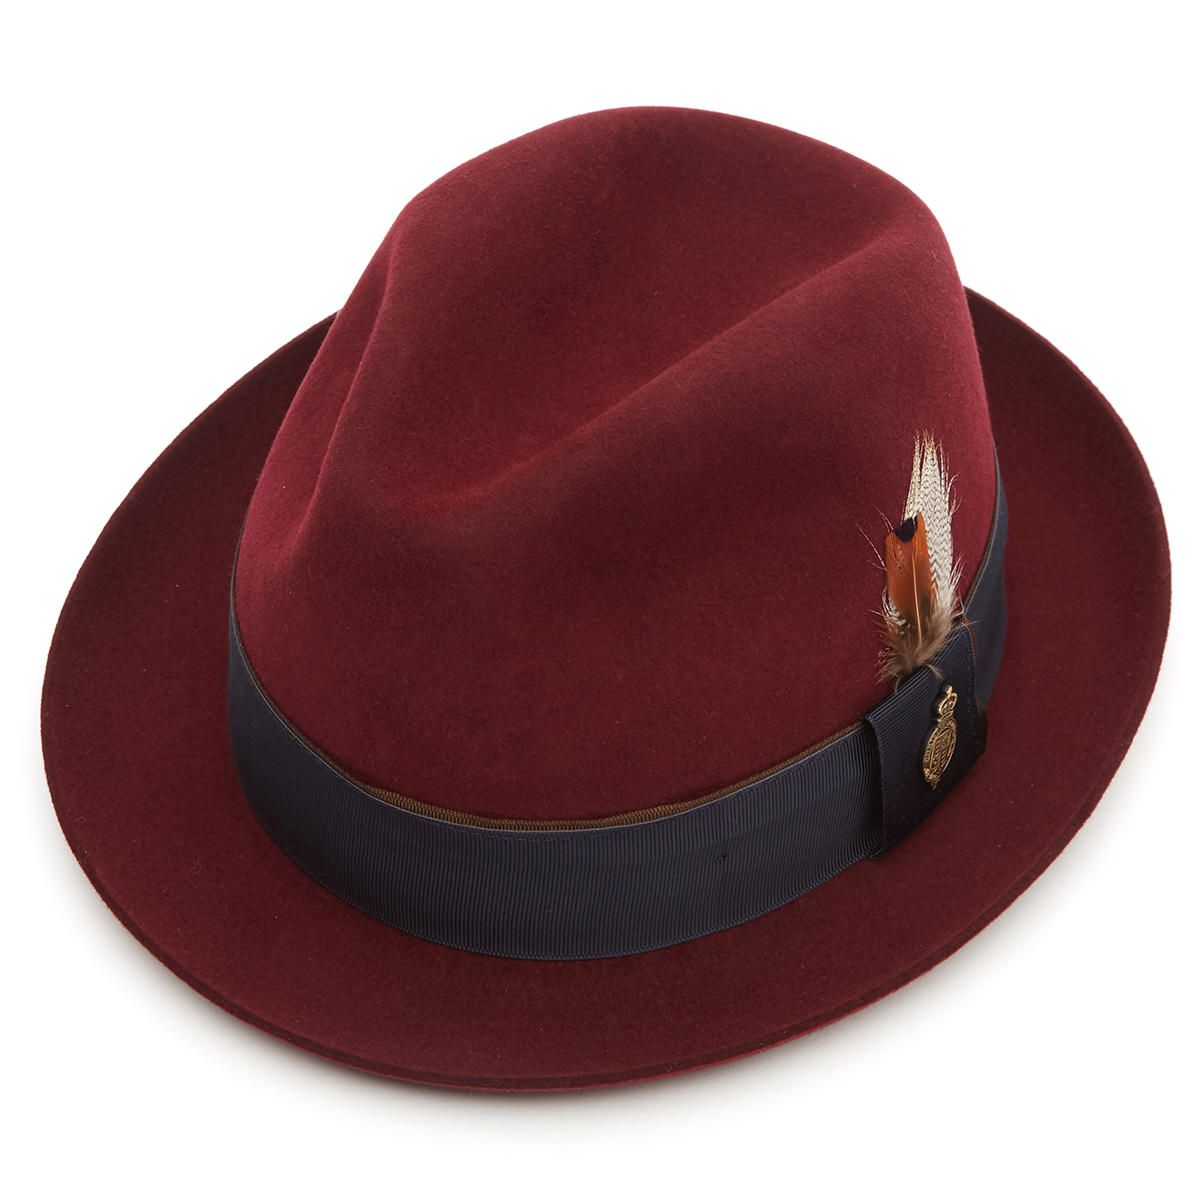 Finchley Fur Felt Trilby Hat Red Wine 61